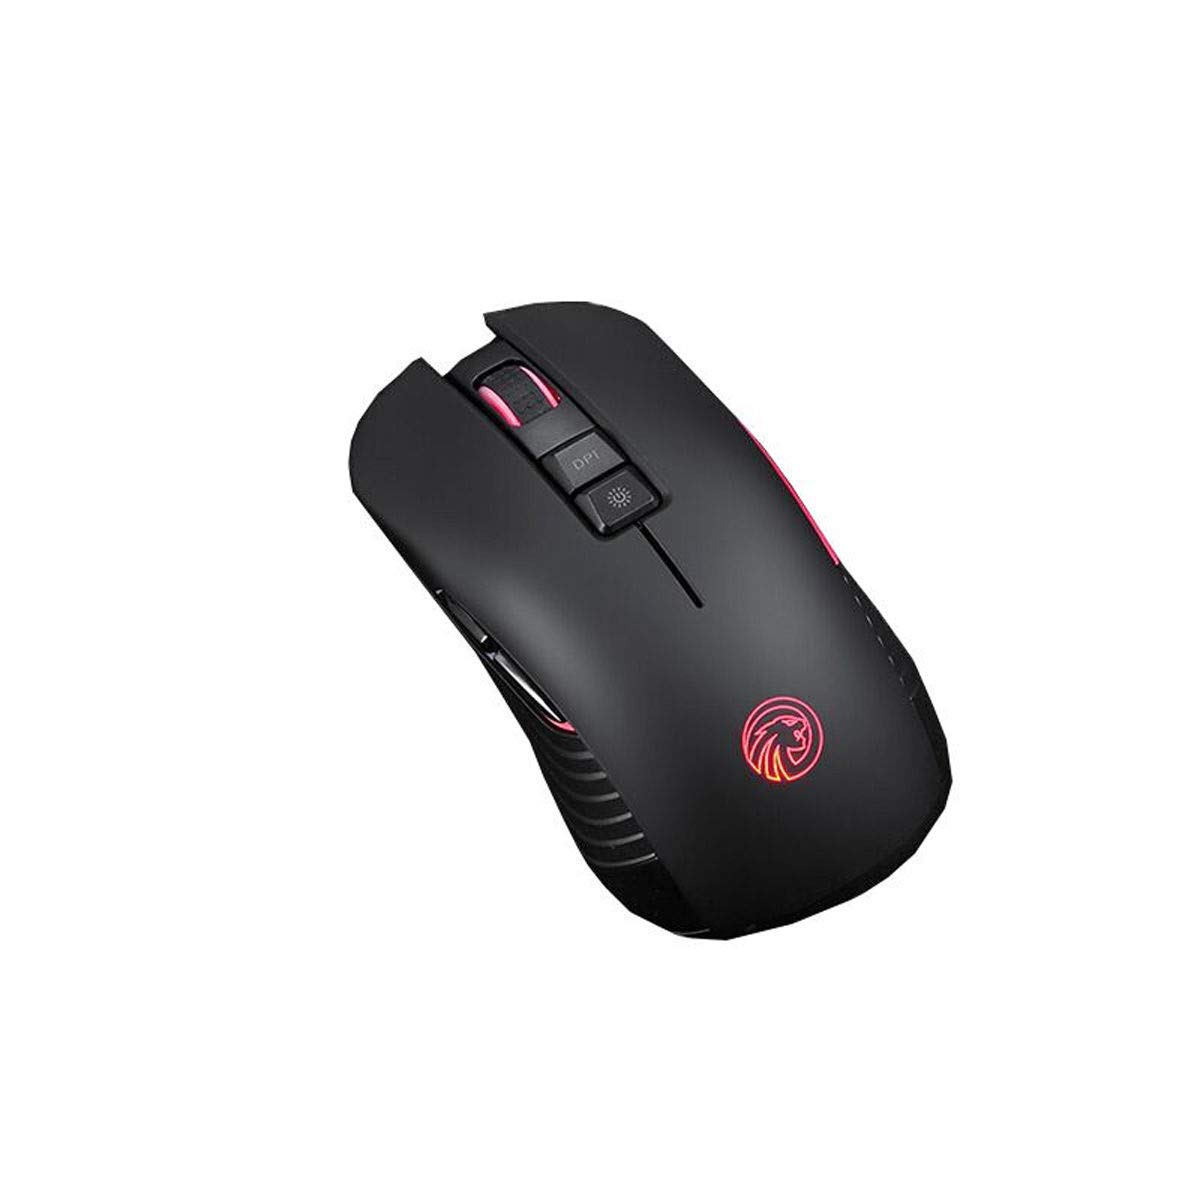 S SKYEE 800-1600 DPI USB Optical Wireless Computer Mouse 2.4G Receiver Silent Mouse for PC Laptop